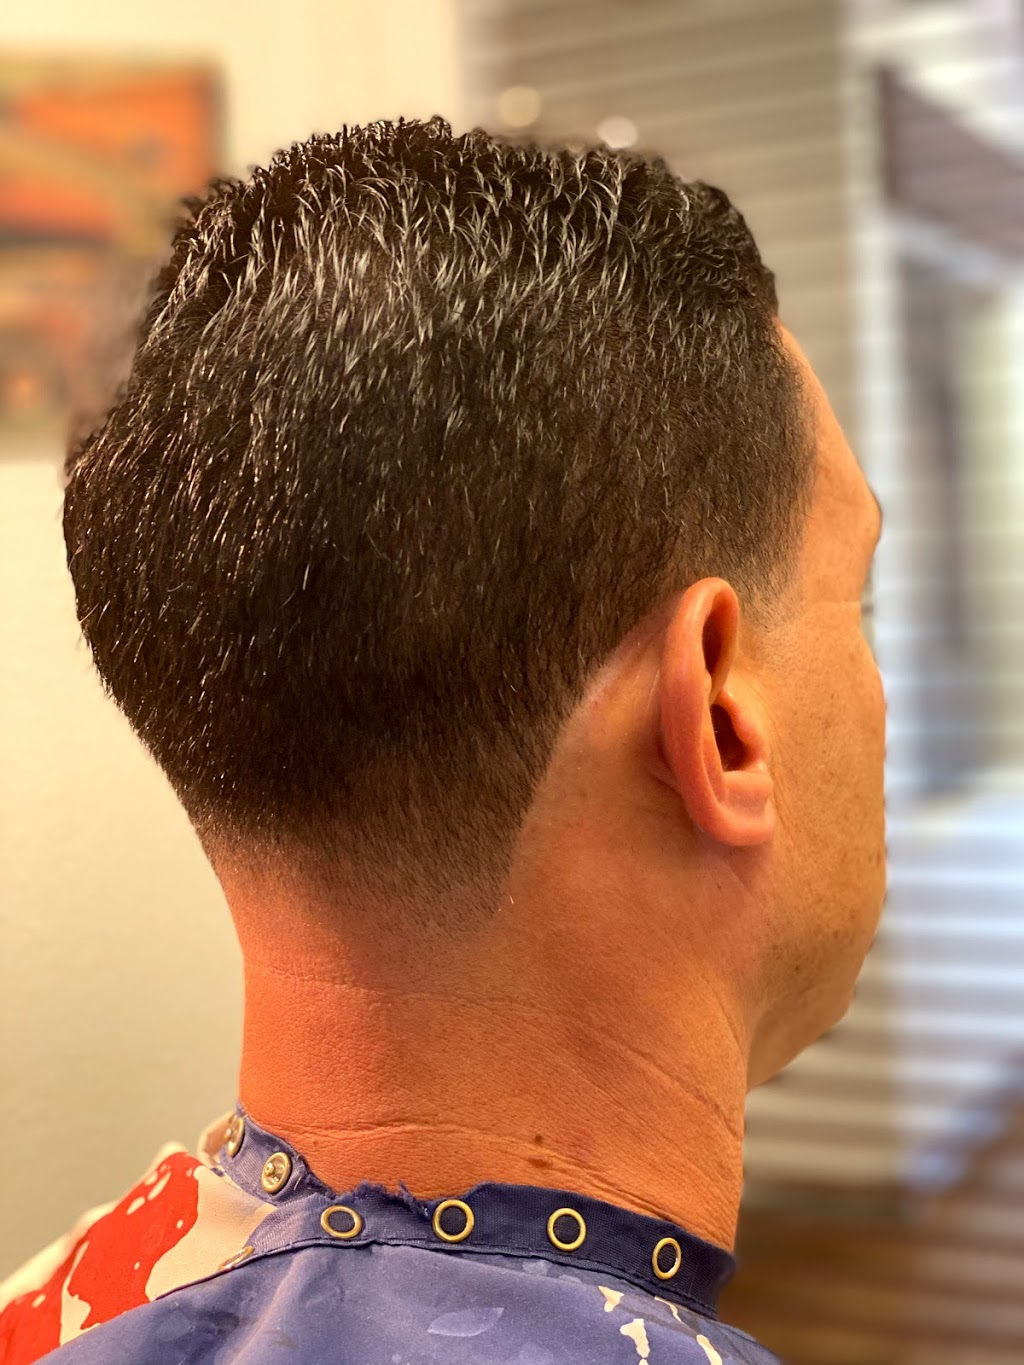 Cicis Barber Haus - hair care  | Photo 8 of 10 | Address: 301 Trophy Lake Drive Suit 156. #3, Trophy Club, TX 76262, USA | Phone: (817) 701-6271